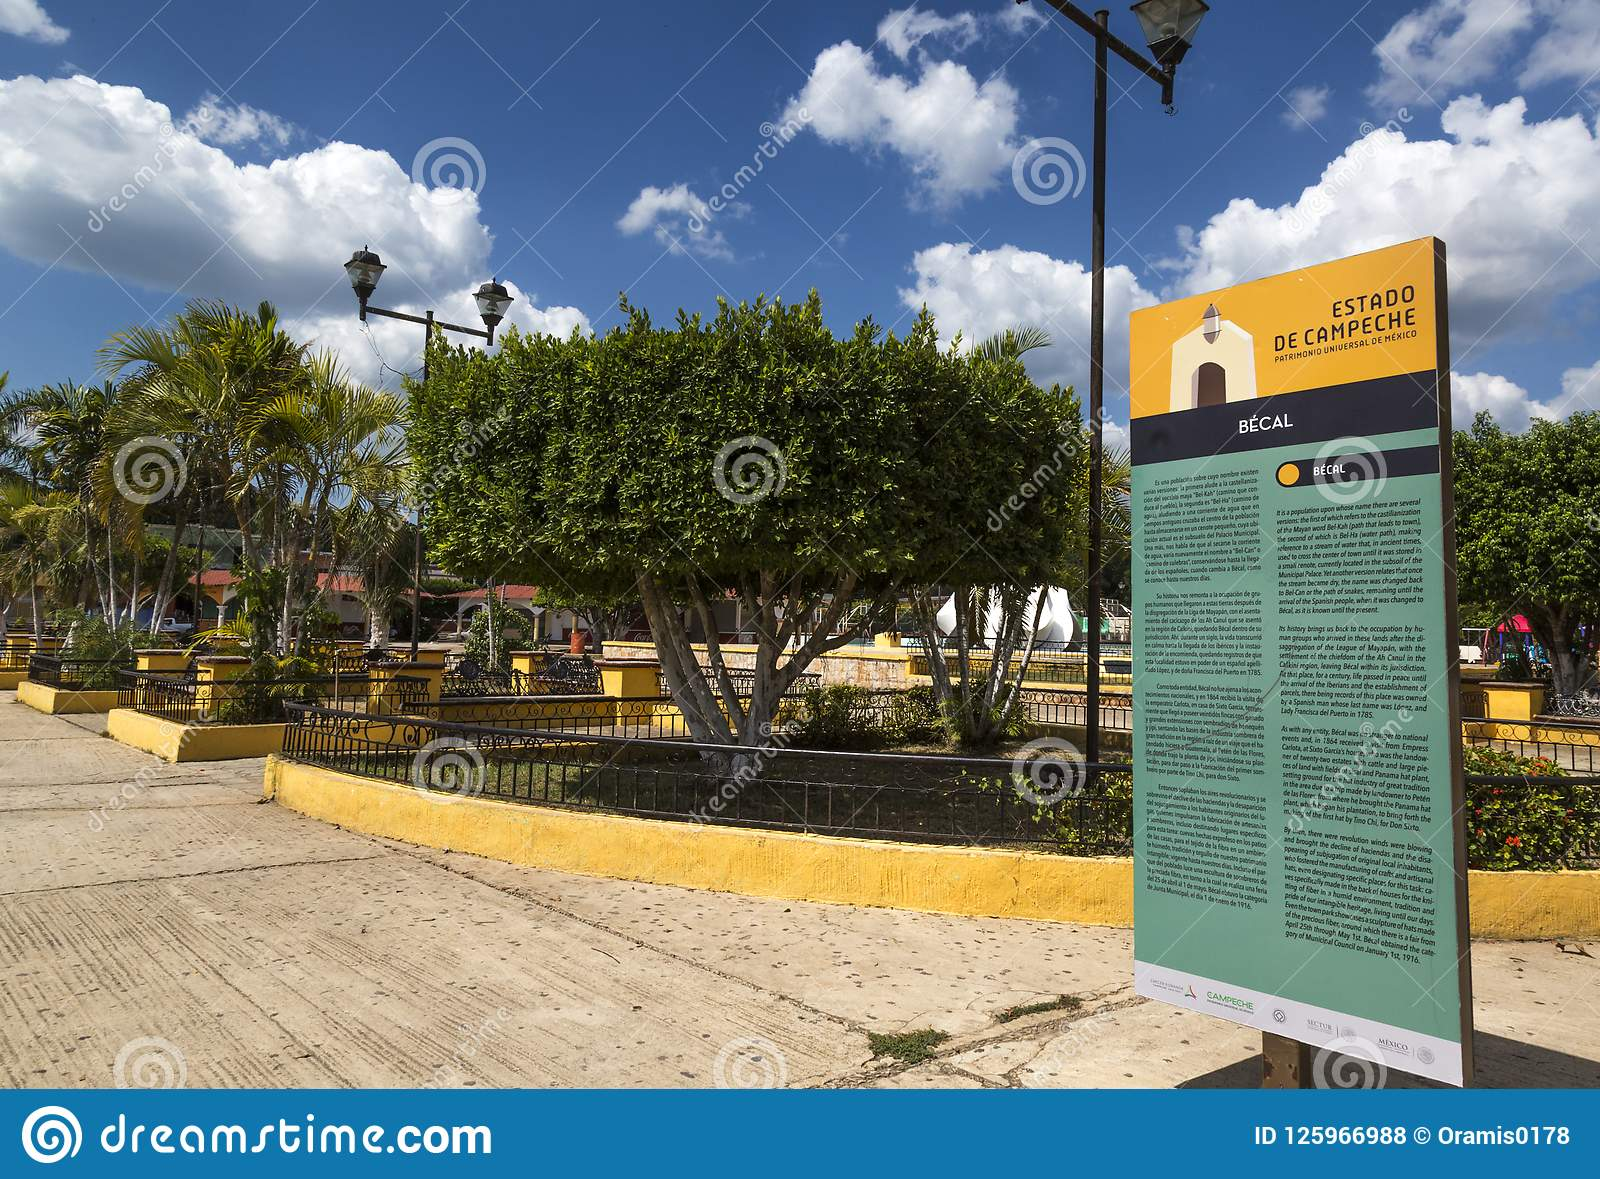 Campeche City   Military Wiki   FANDOM powered by Wikia   Campeche City Monuments